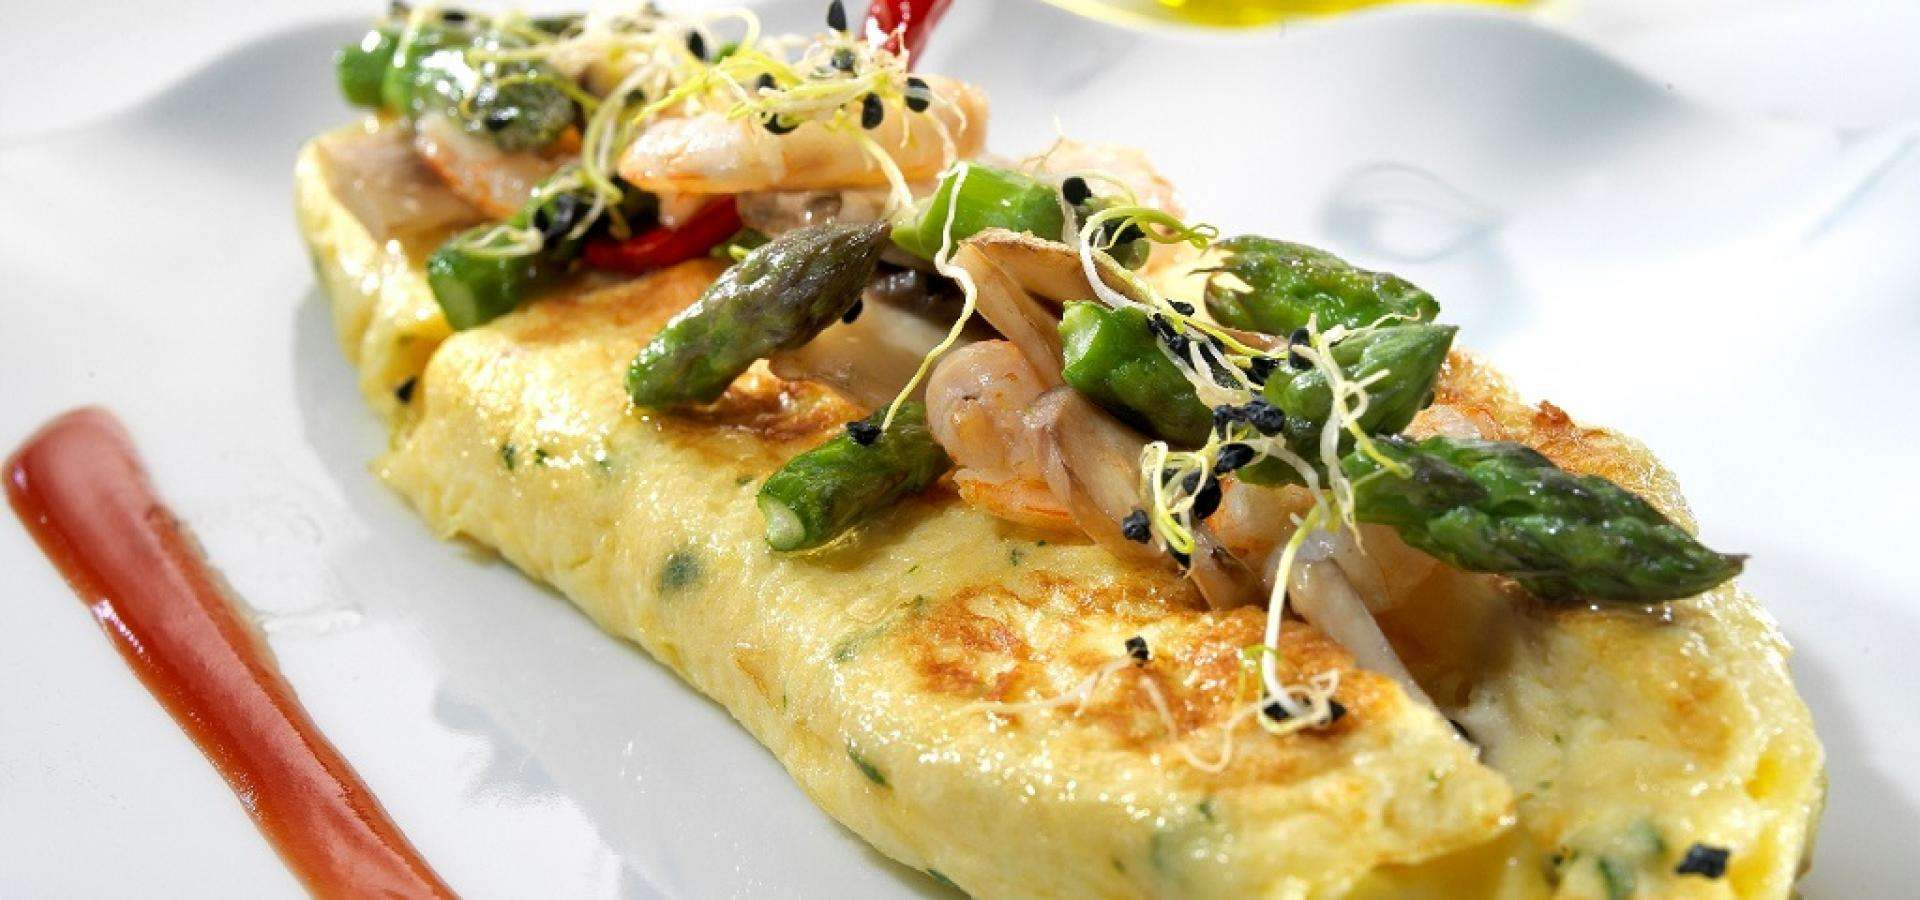 Rolled omelette stuffed with prawns